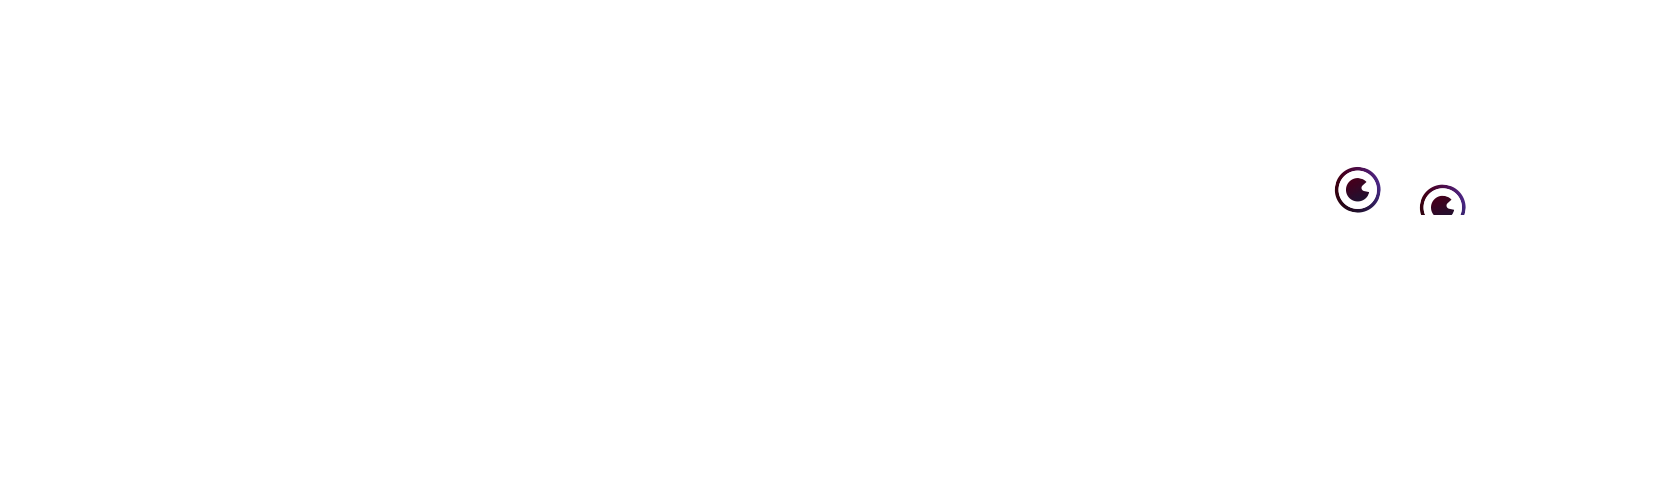 Authoring system